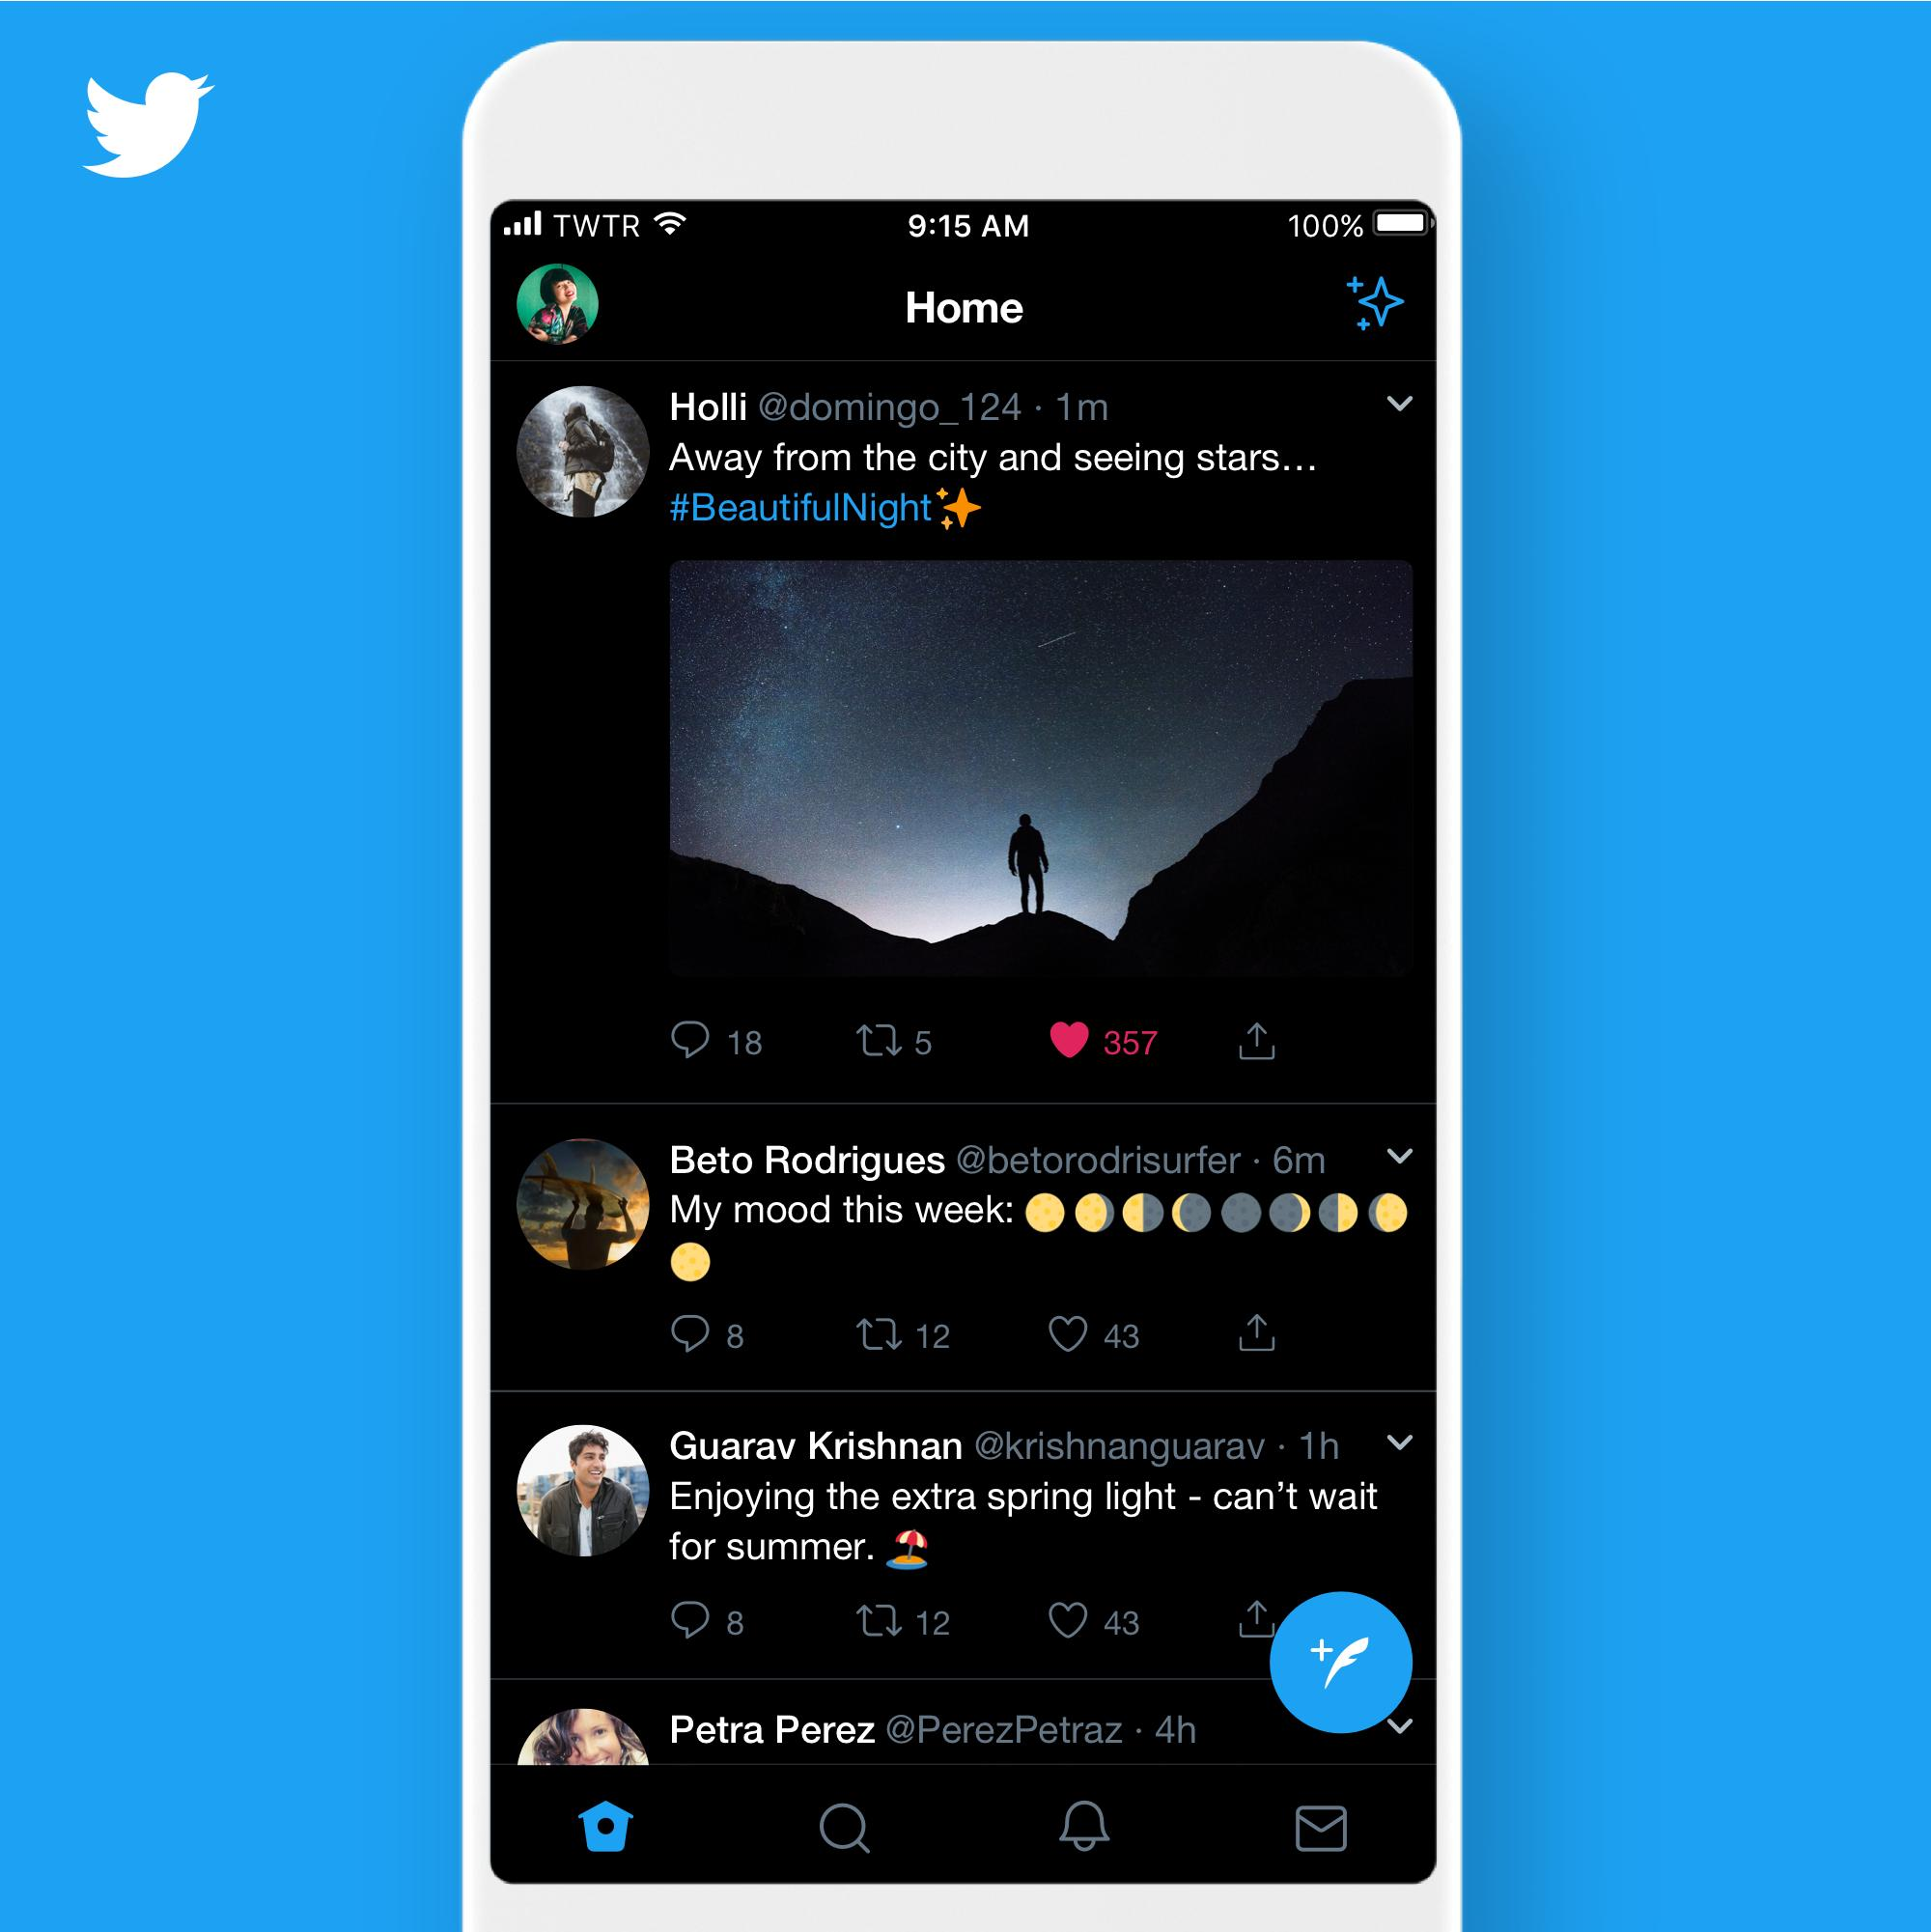 Twitter for iOS picks up a pure black theme and automatic Dark Mode